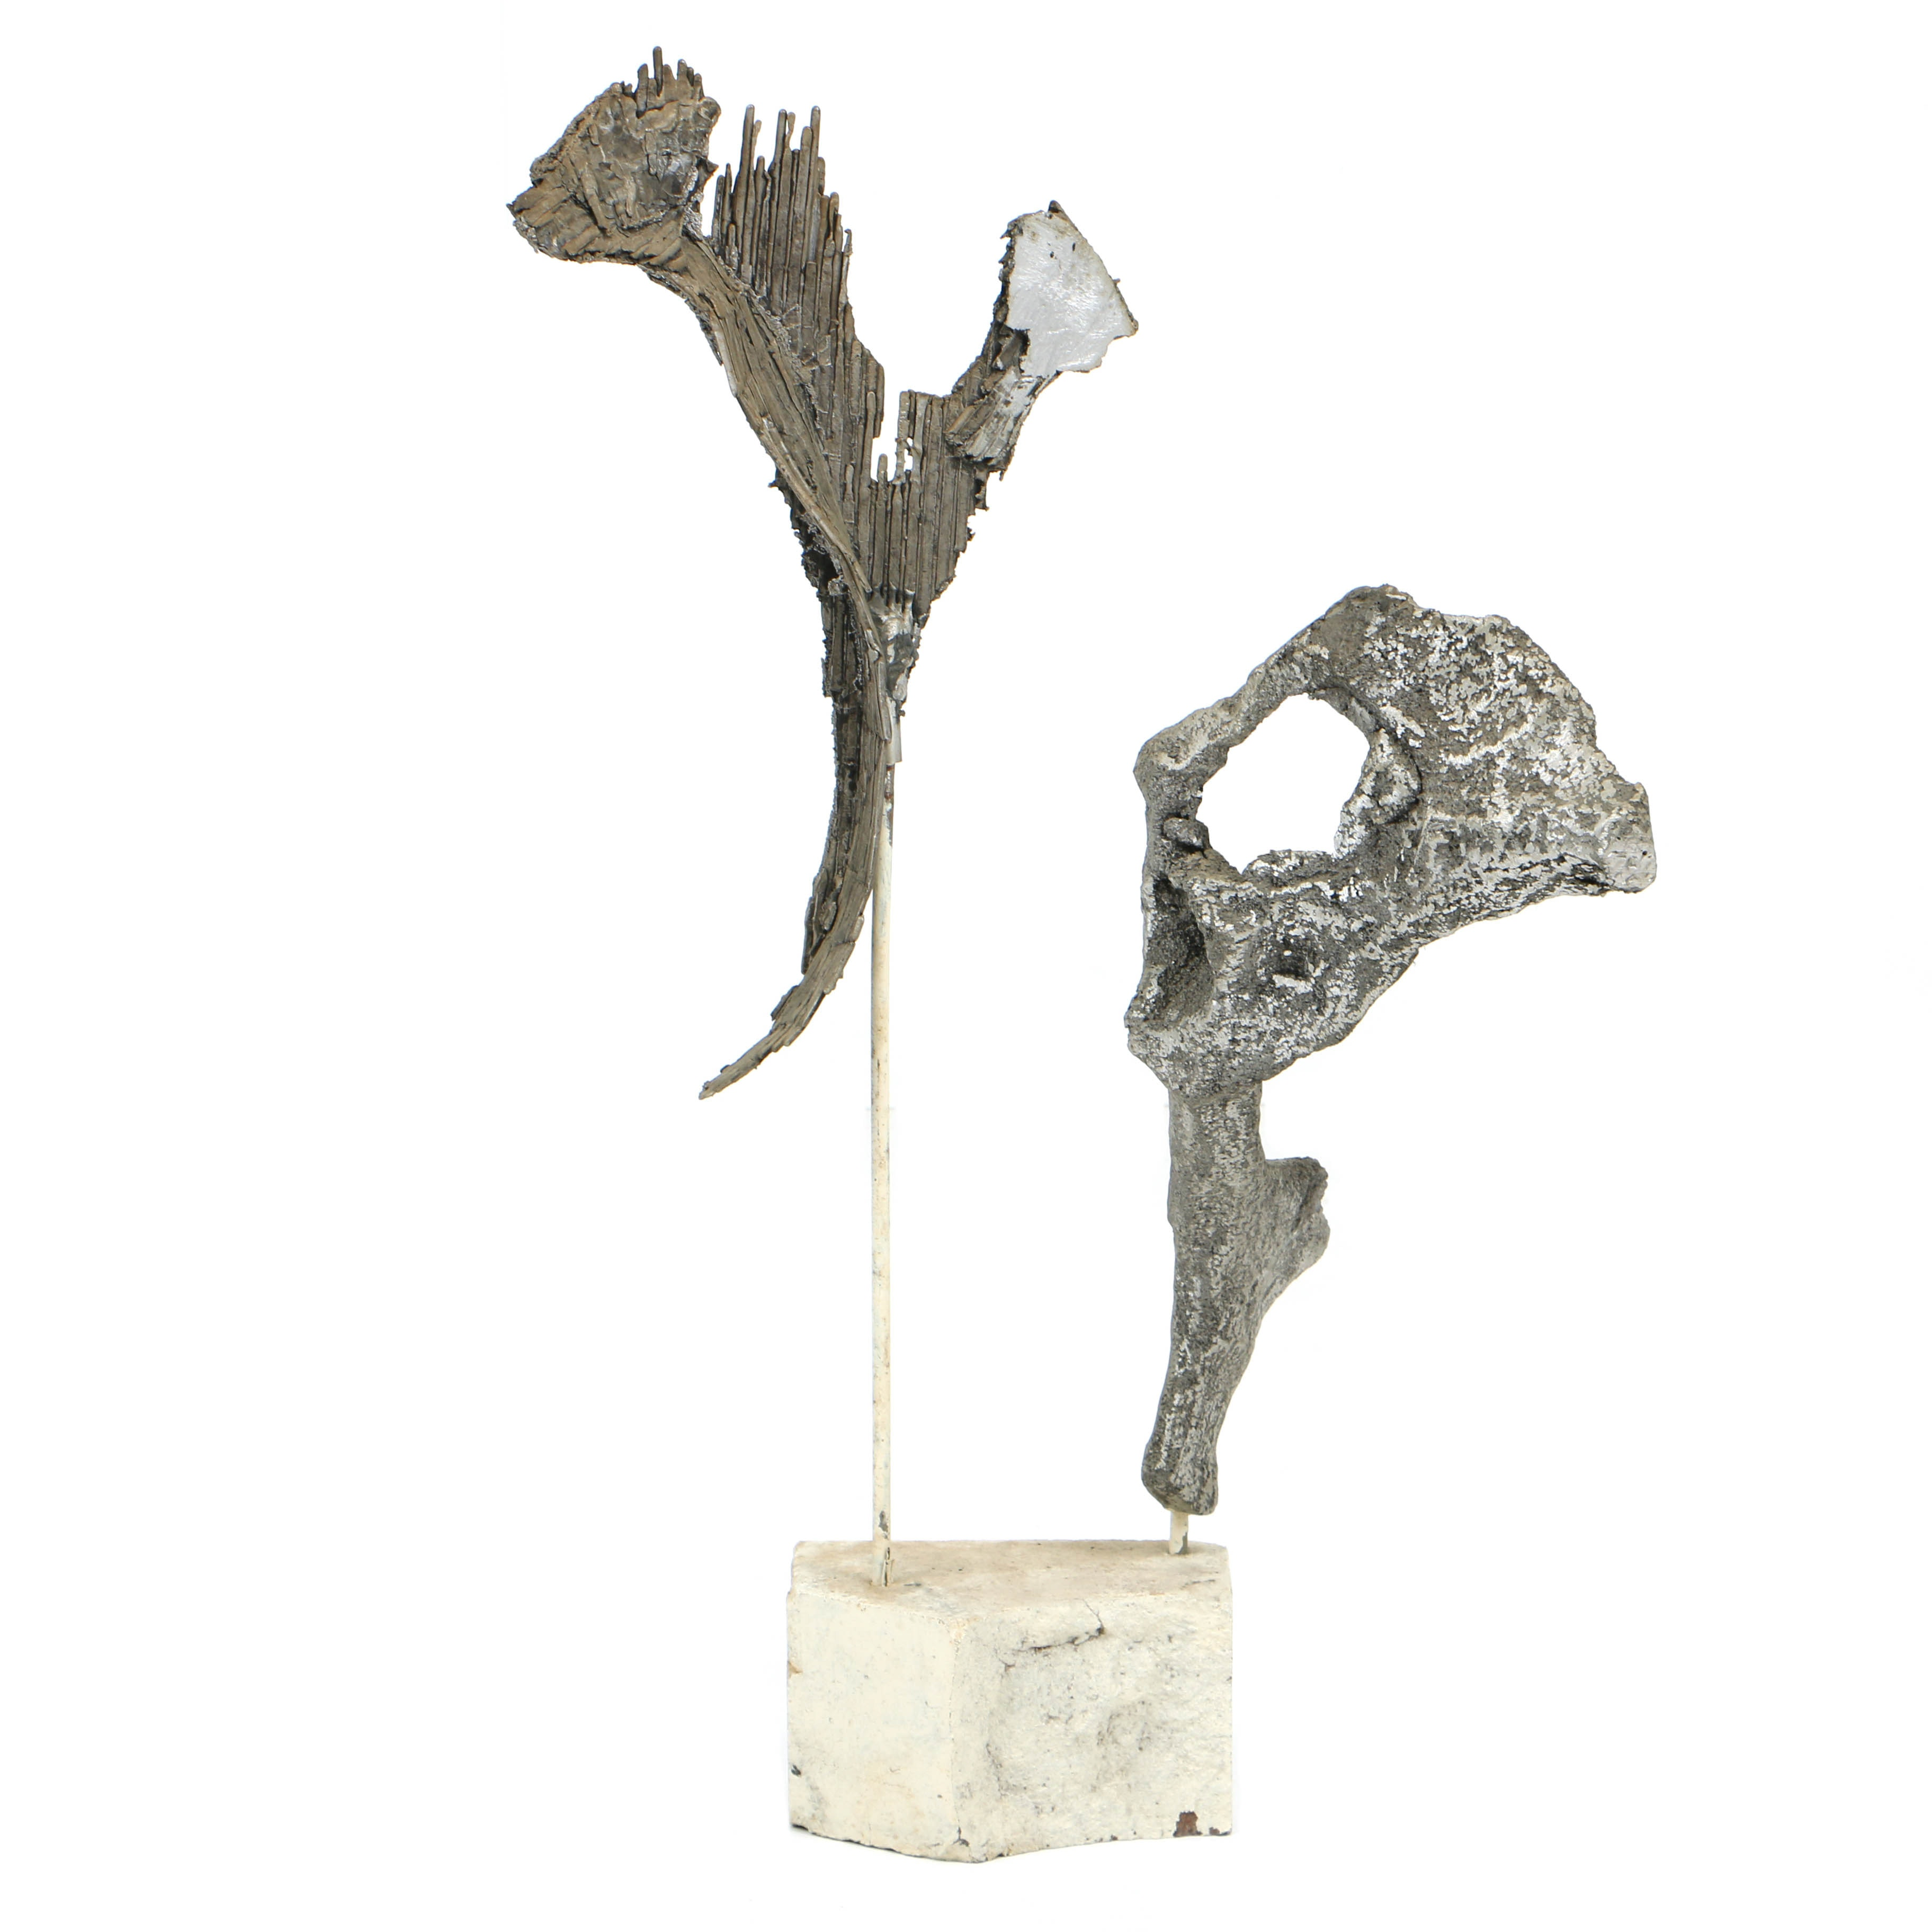 Abstract Metal Sculpture on Stone Base